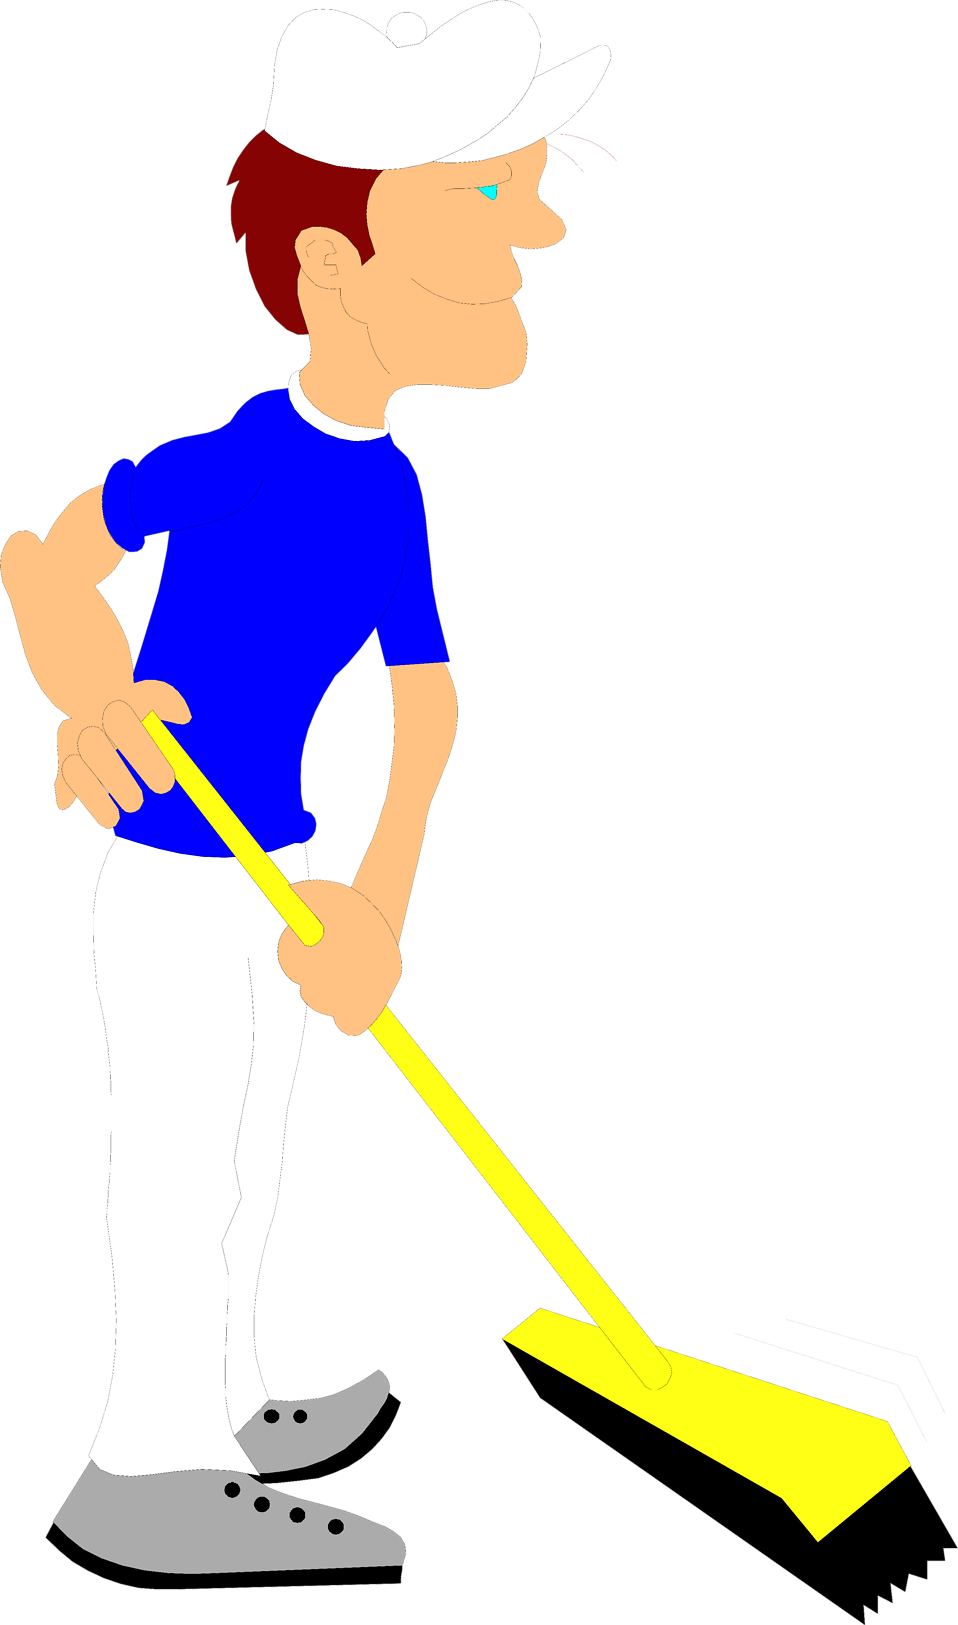 Free stock photo illustration. Male clipart janitor